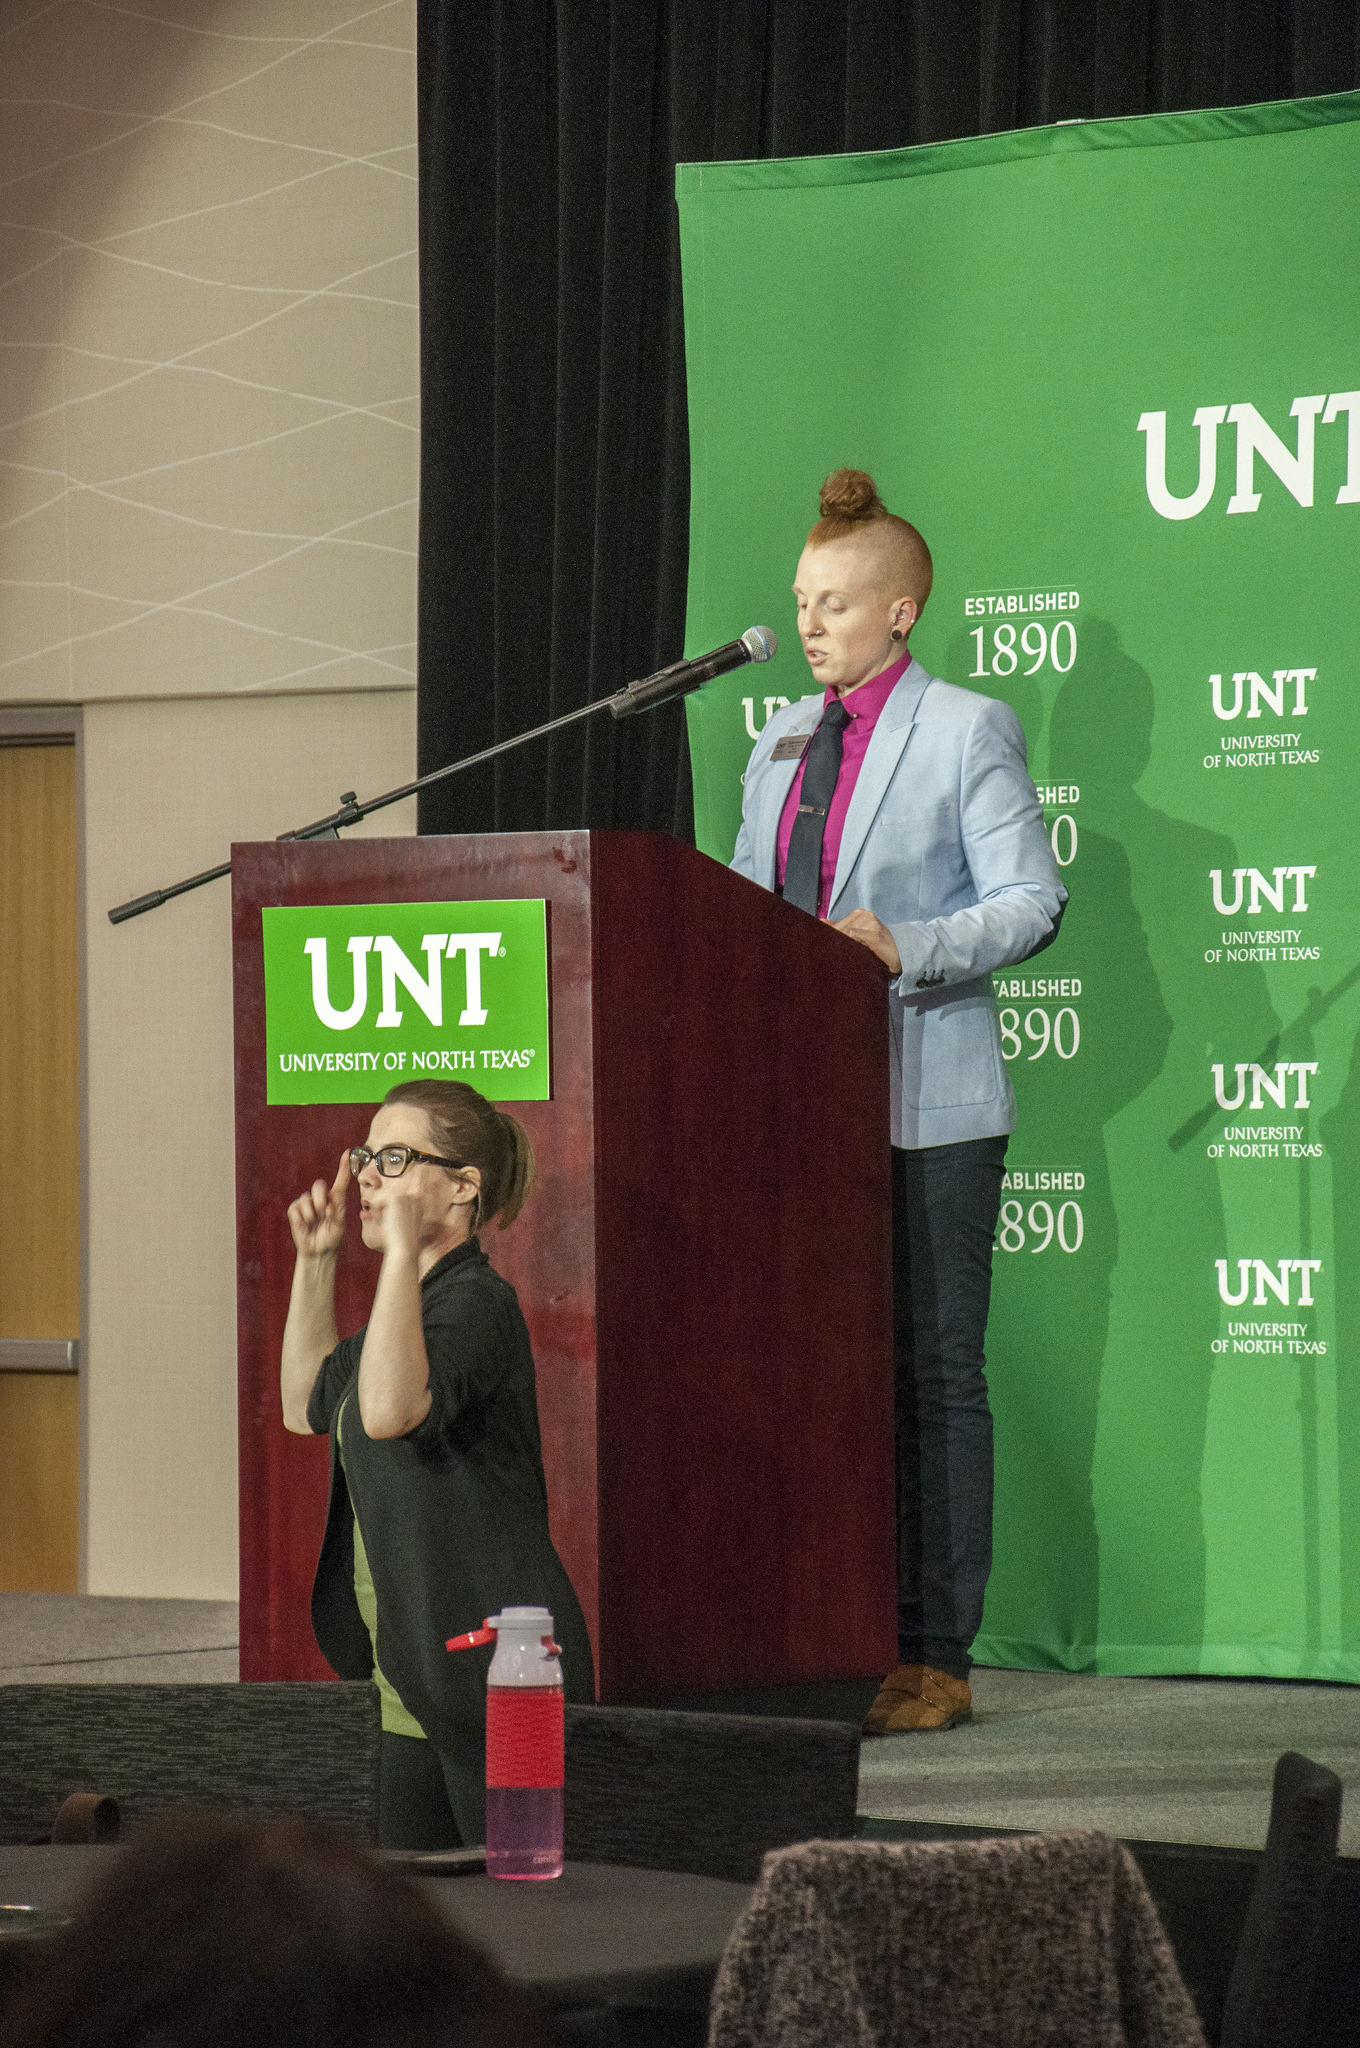 UNT Equity and Diversity Conference Feb. 28